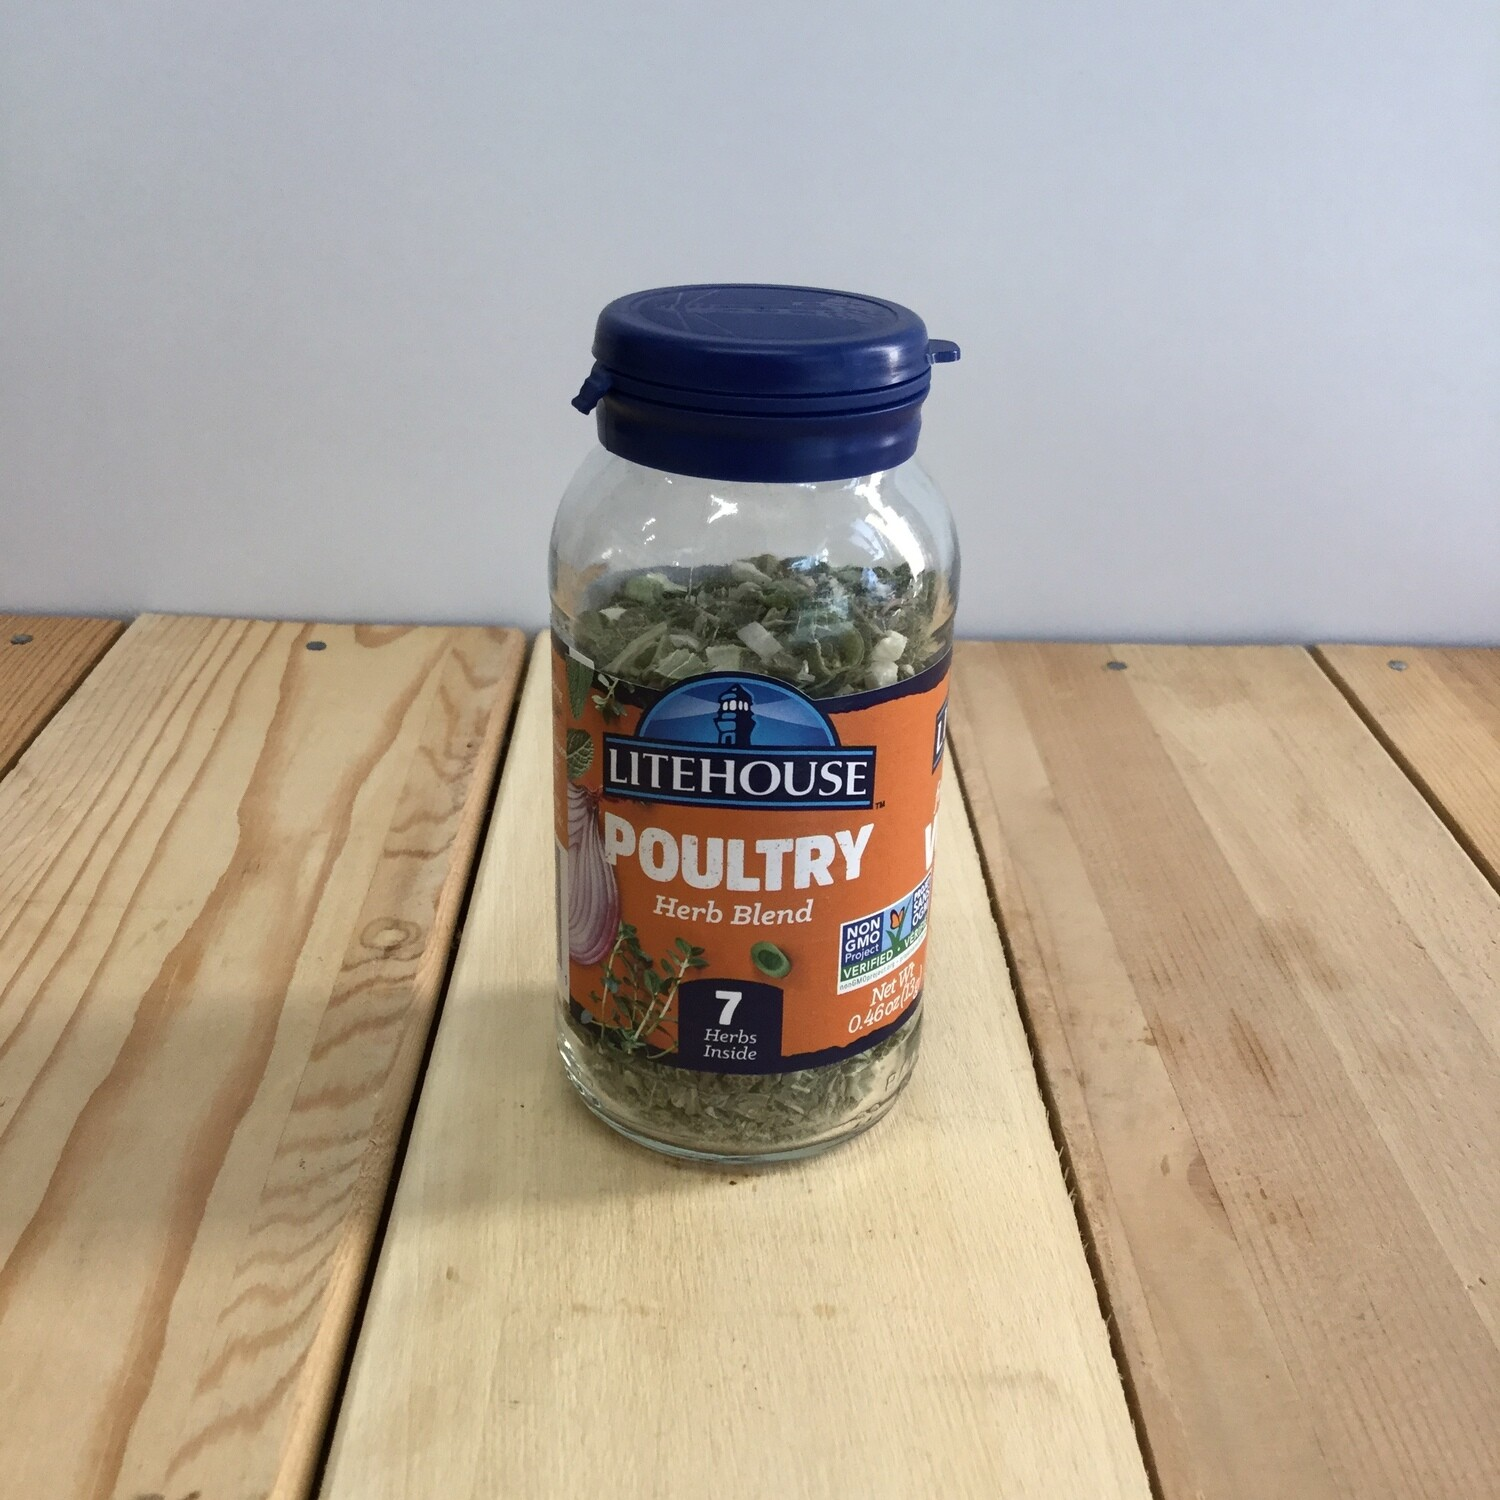 LITEHOUSE Poultry Herbs 200ml